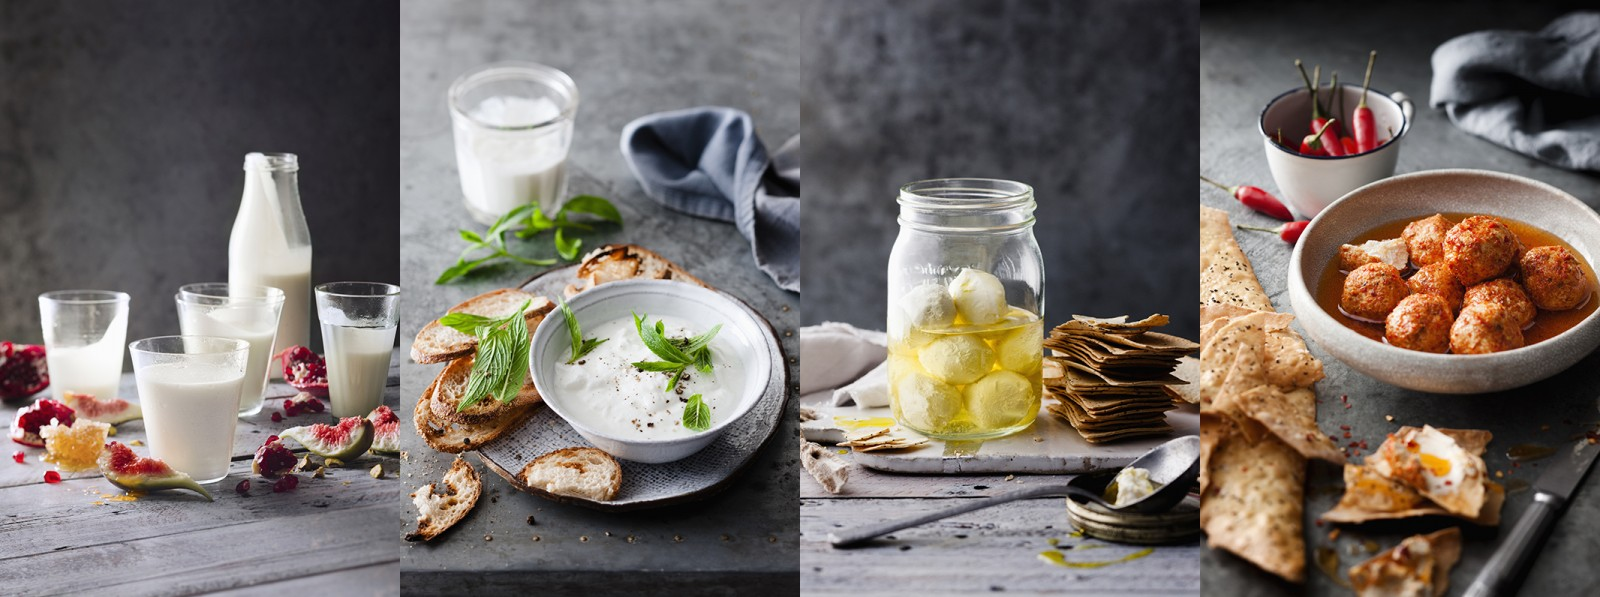 Andrew Young Sydney Food Photographer Lantern Studio Andrew works predominantly in food photography for advertising, packaging , editorial and cook books. Food Styling Food Stylists Lantern Studio...